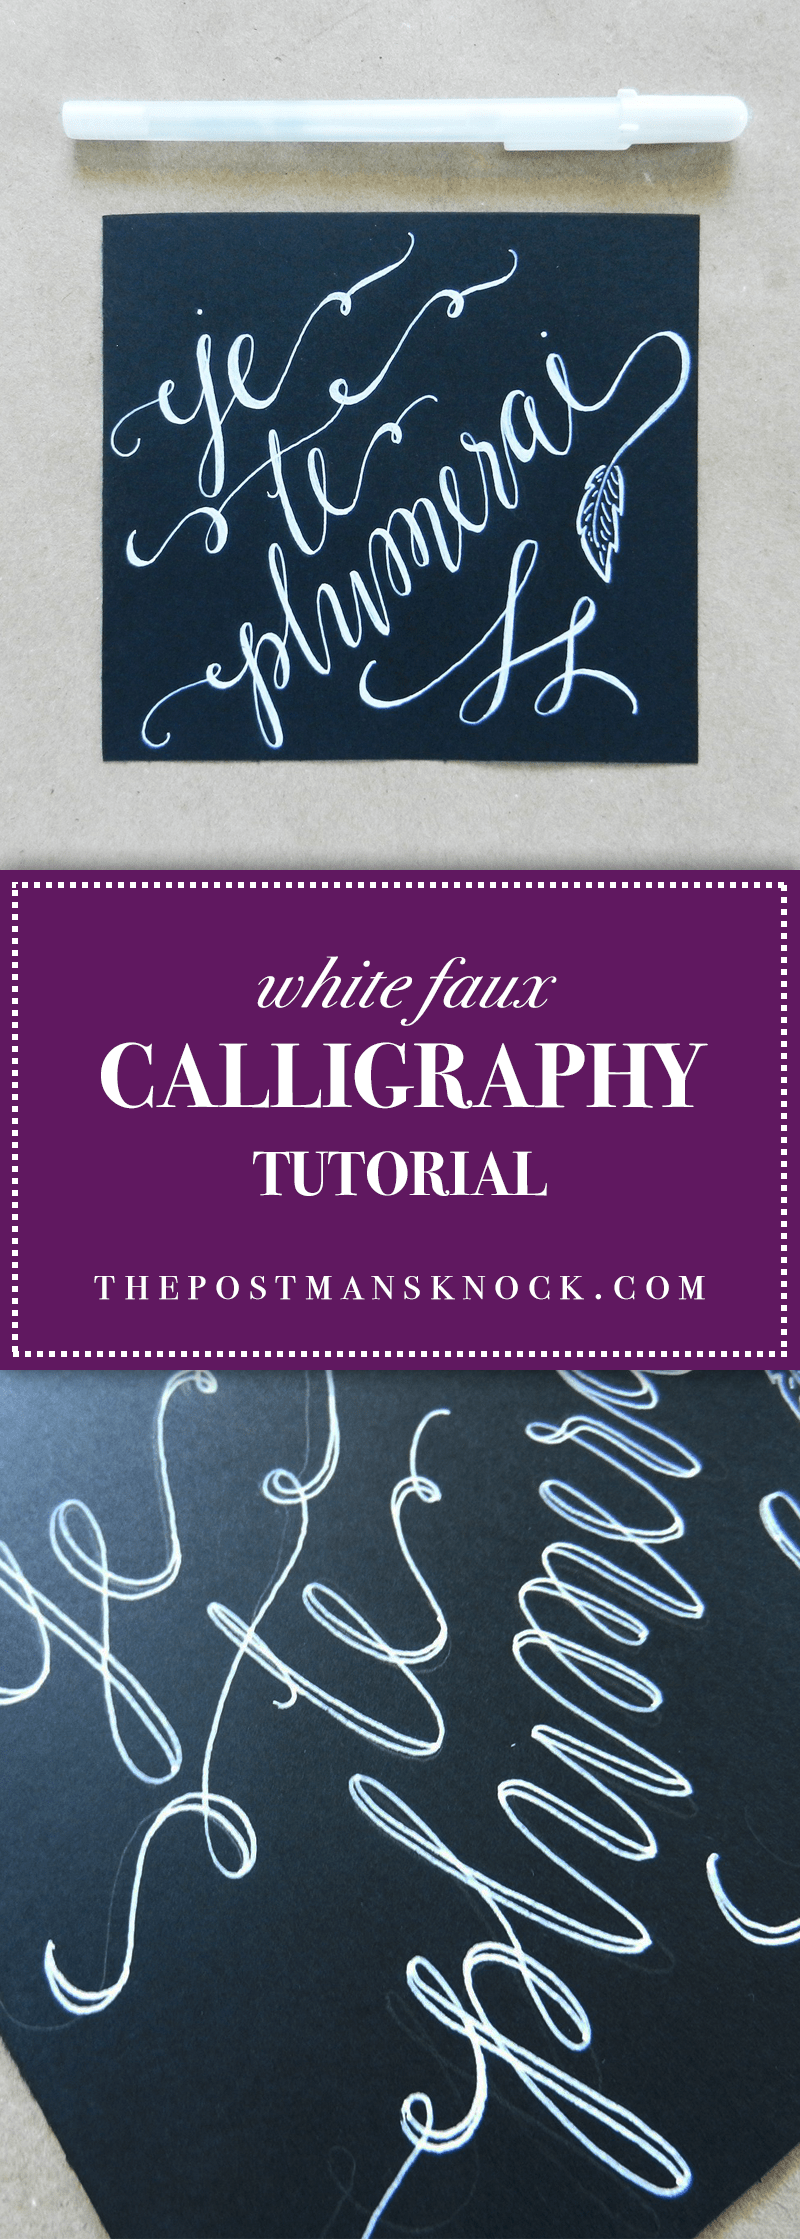 White faux calligraphy tutorial the postman 39 s knock Calligraphy tutorial